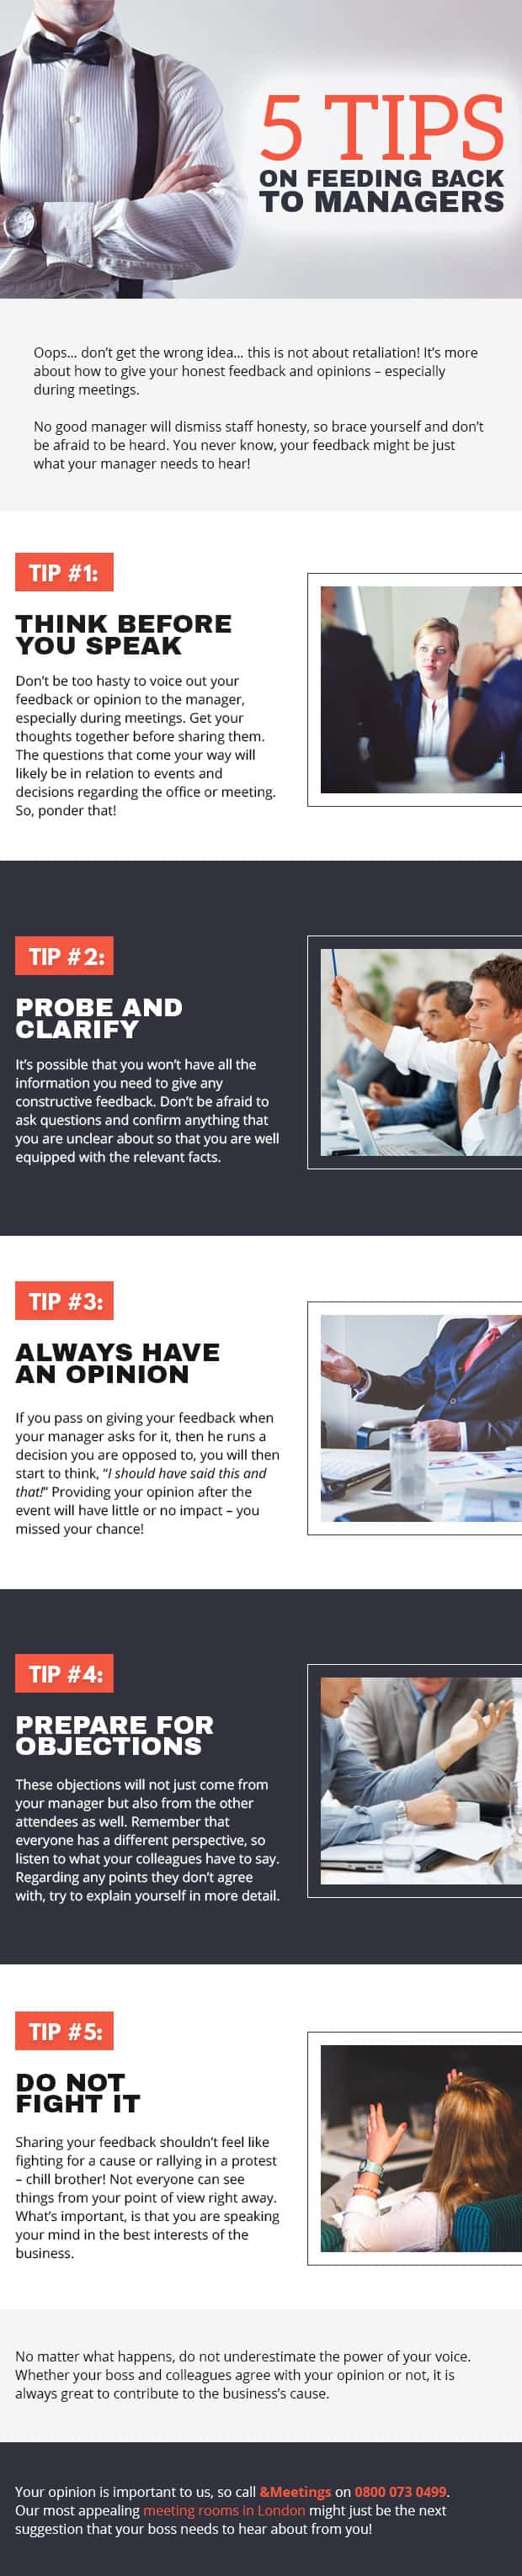 Infographic: 5 Tips on Feeding Back to Managers